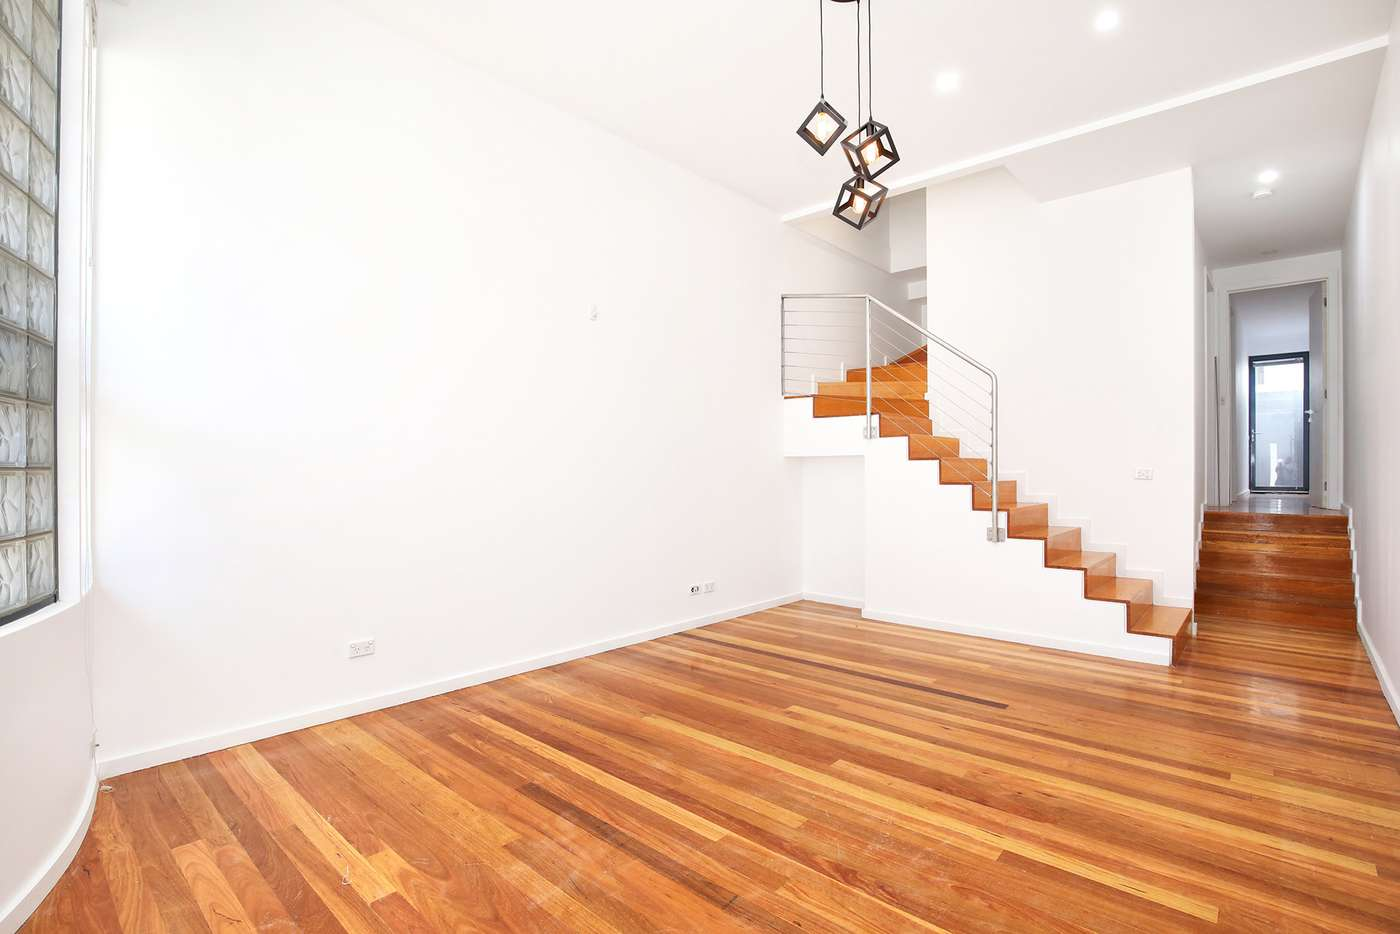 Sixth view of Homely house listing, 35a Park Street, South Melbourne VIC 3205